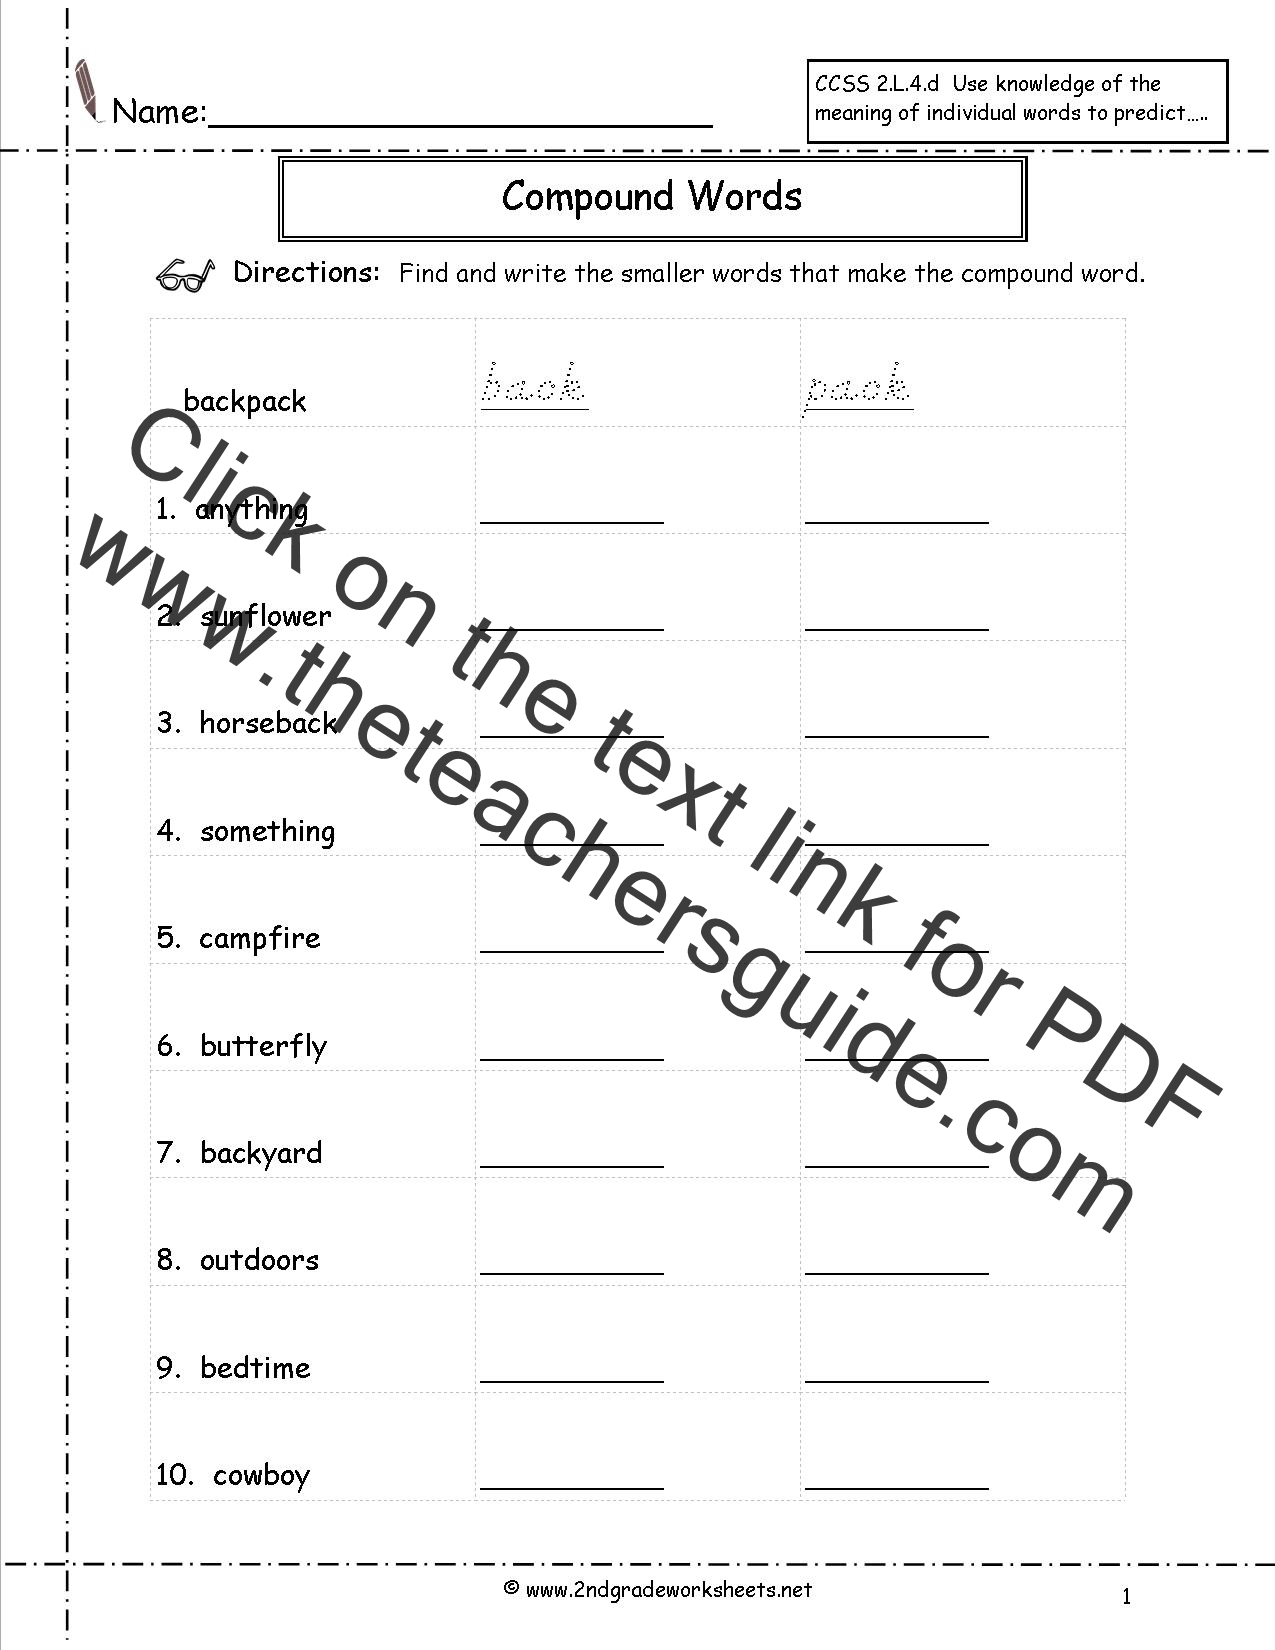 Uncategorized Second Grade Science Worksheets second grade worksheet talktoak free language grammar worksheets and printouts 2nd grade